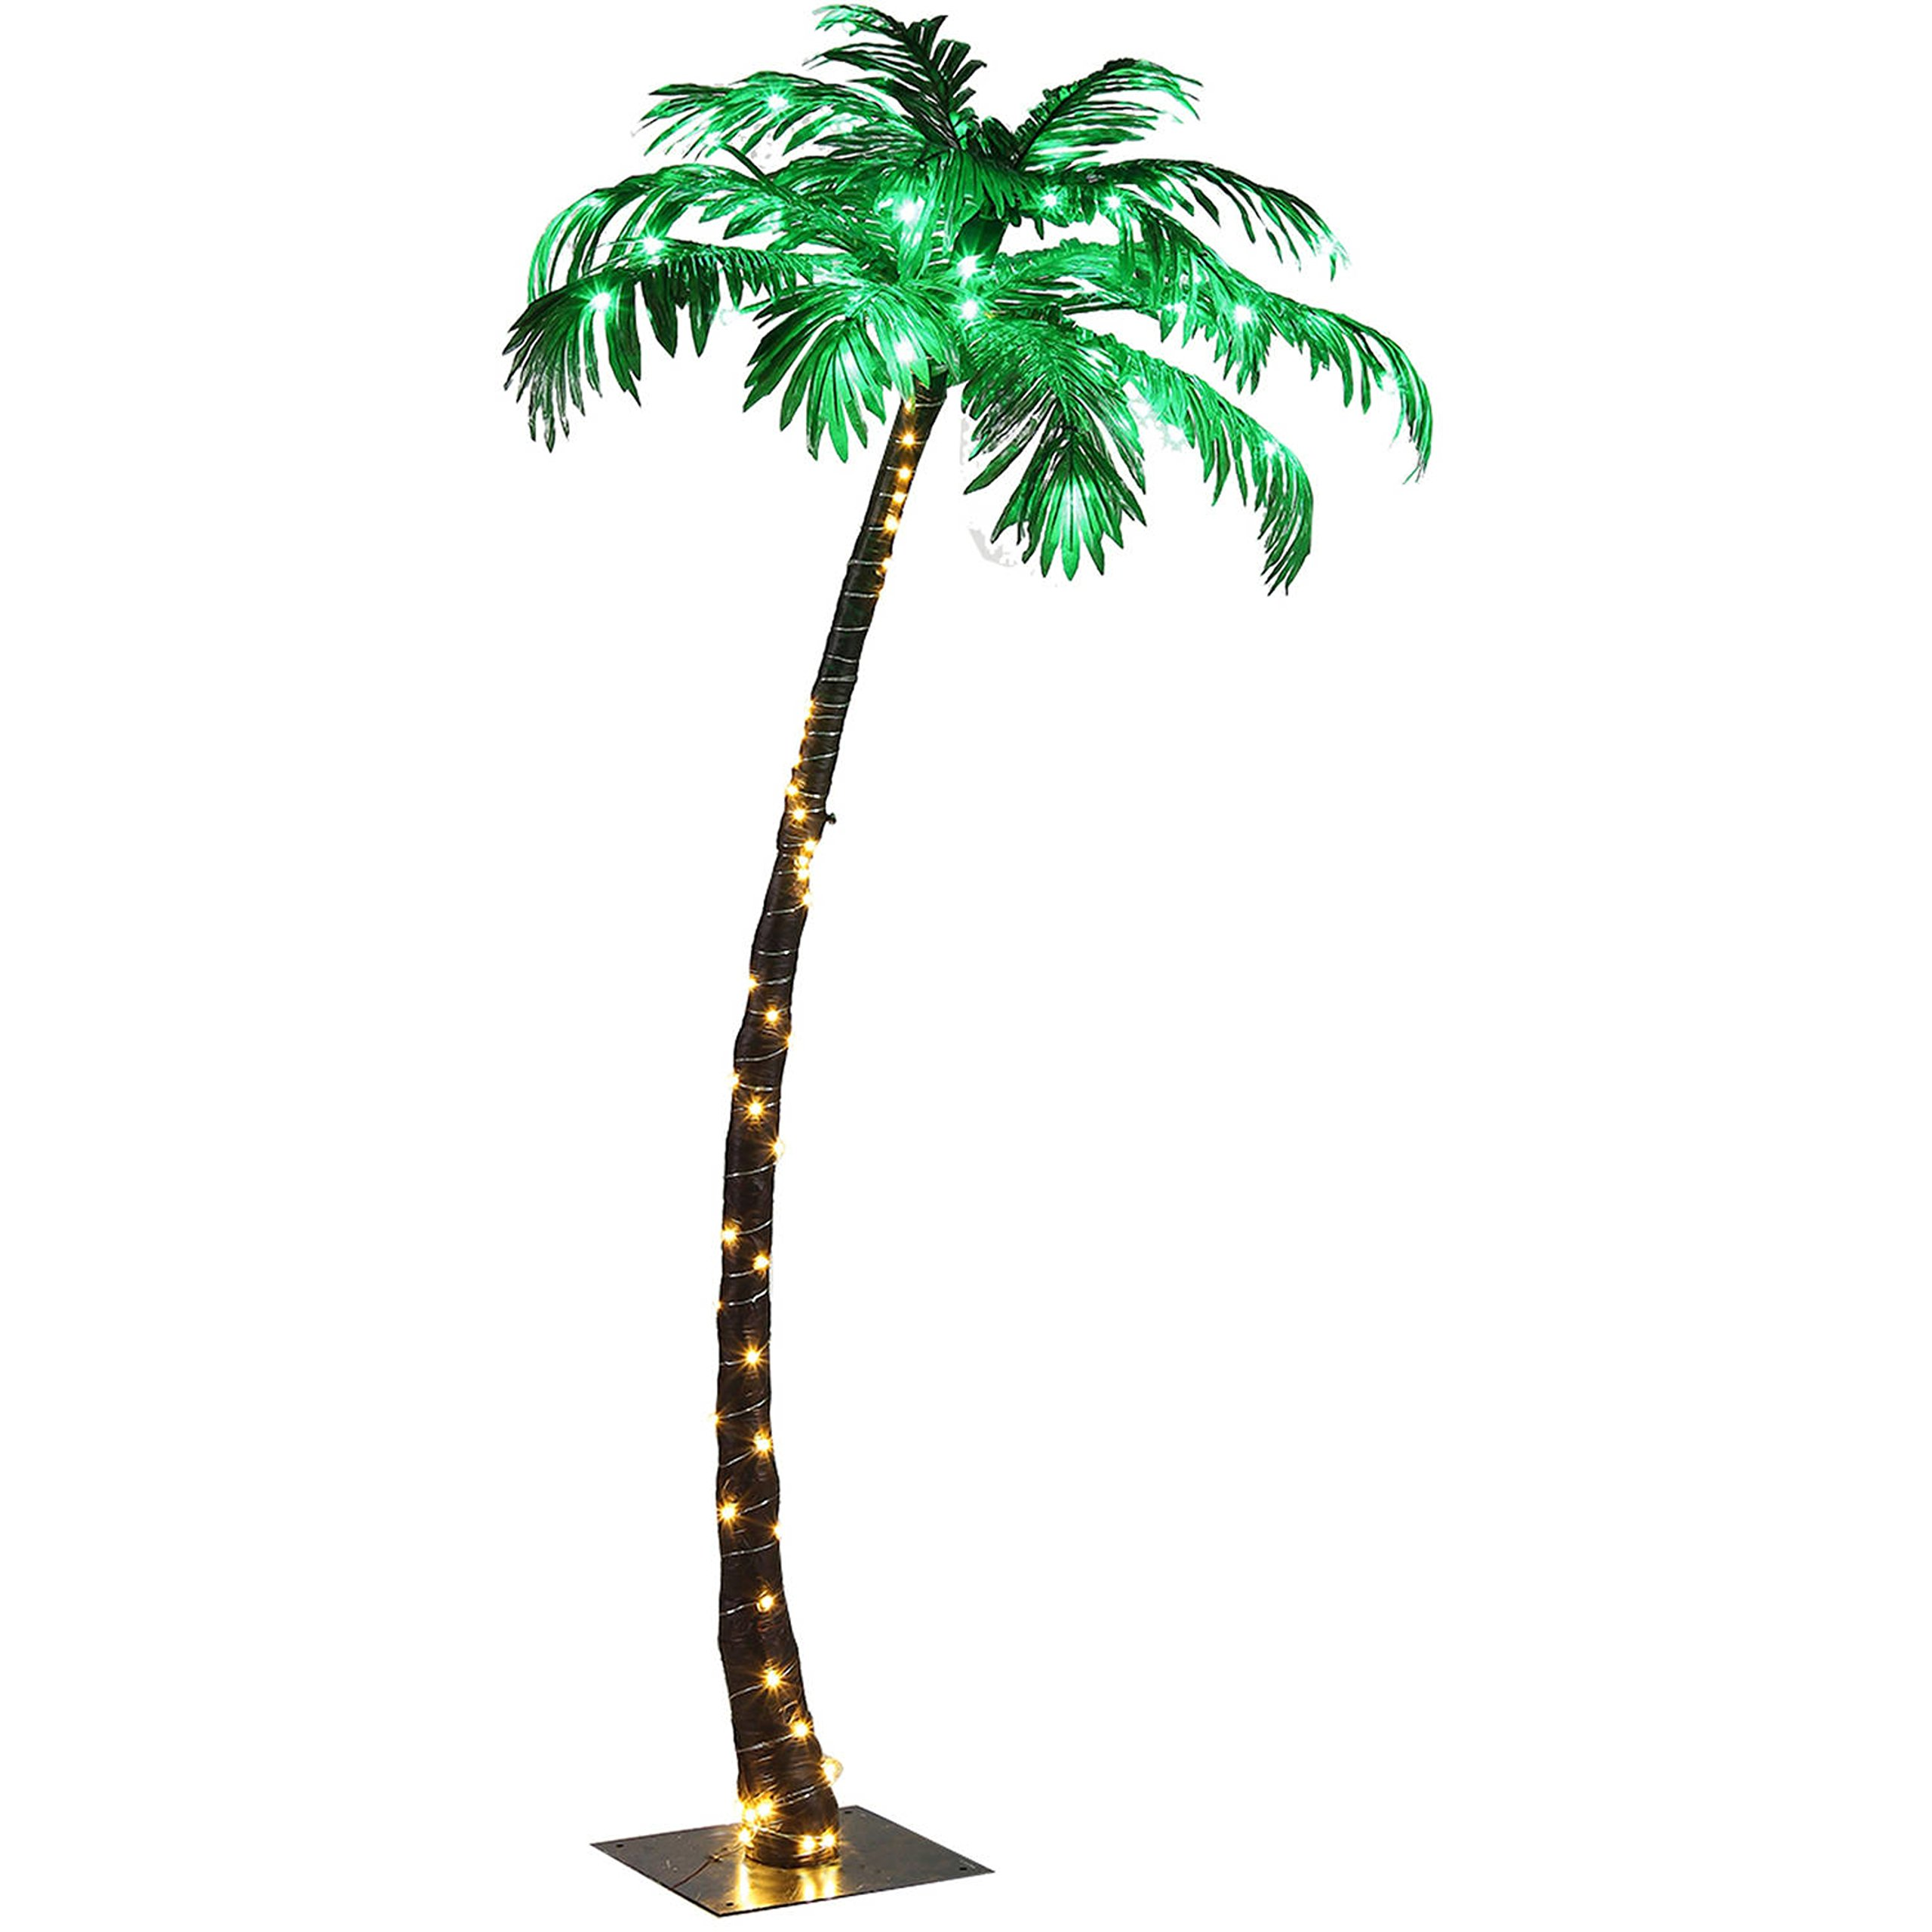 Stable Pedestal Base Design Holiday Decoration 5FT Palm Tree with 56 Warm White LED Lights